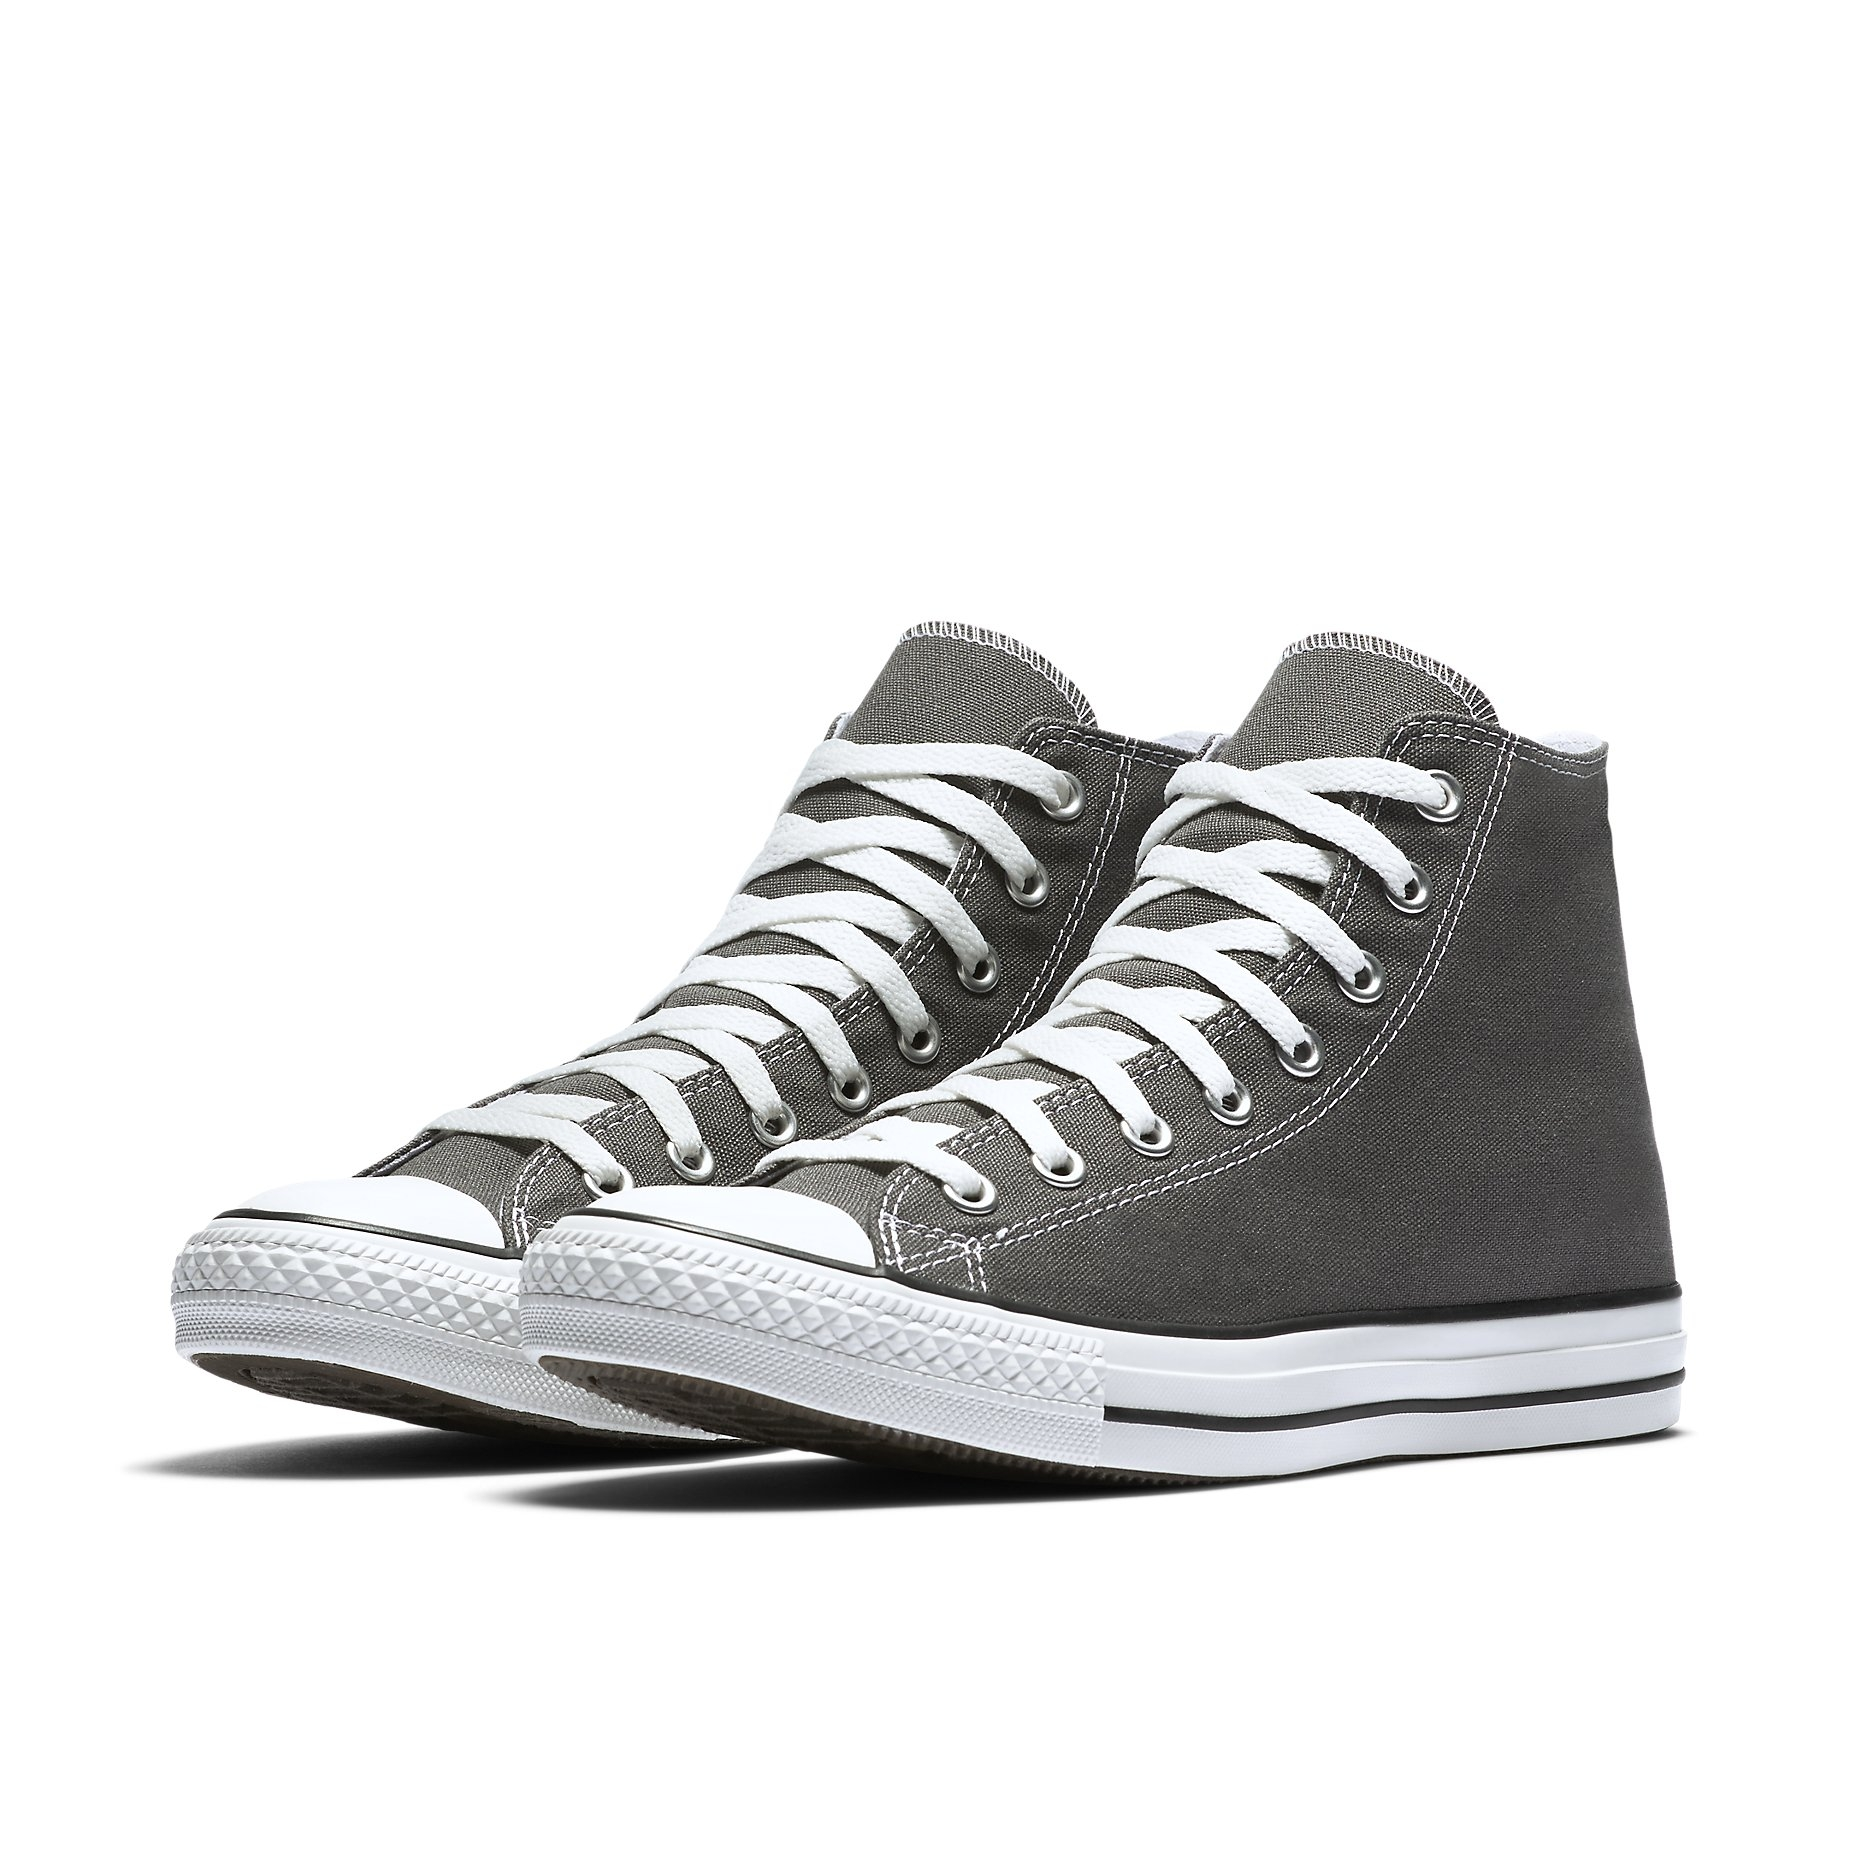 converse tennis shoes black